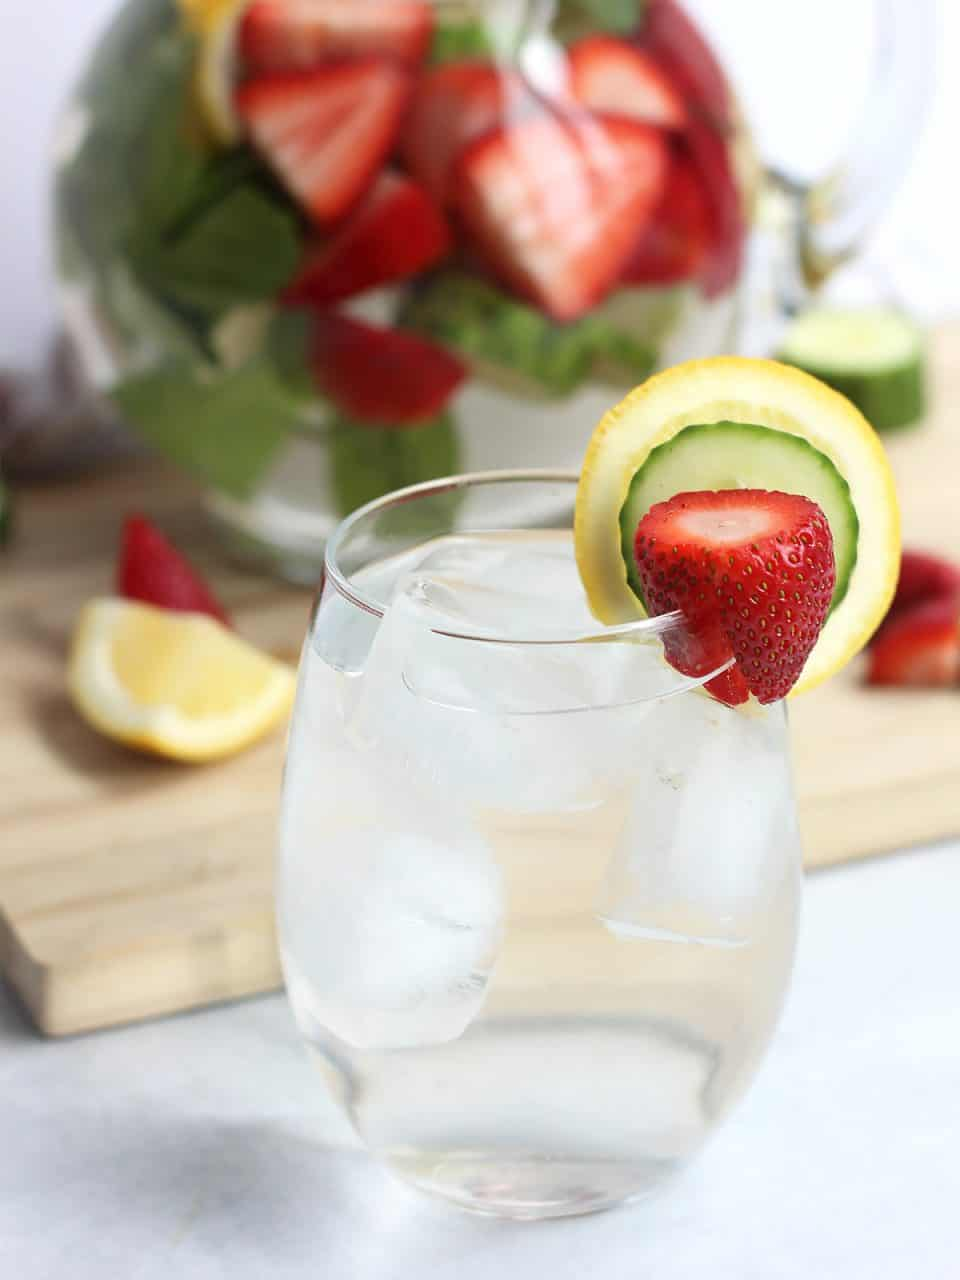 The flavored water in a glass with ice and garnished with slices of fresh fruit.